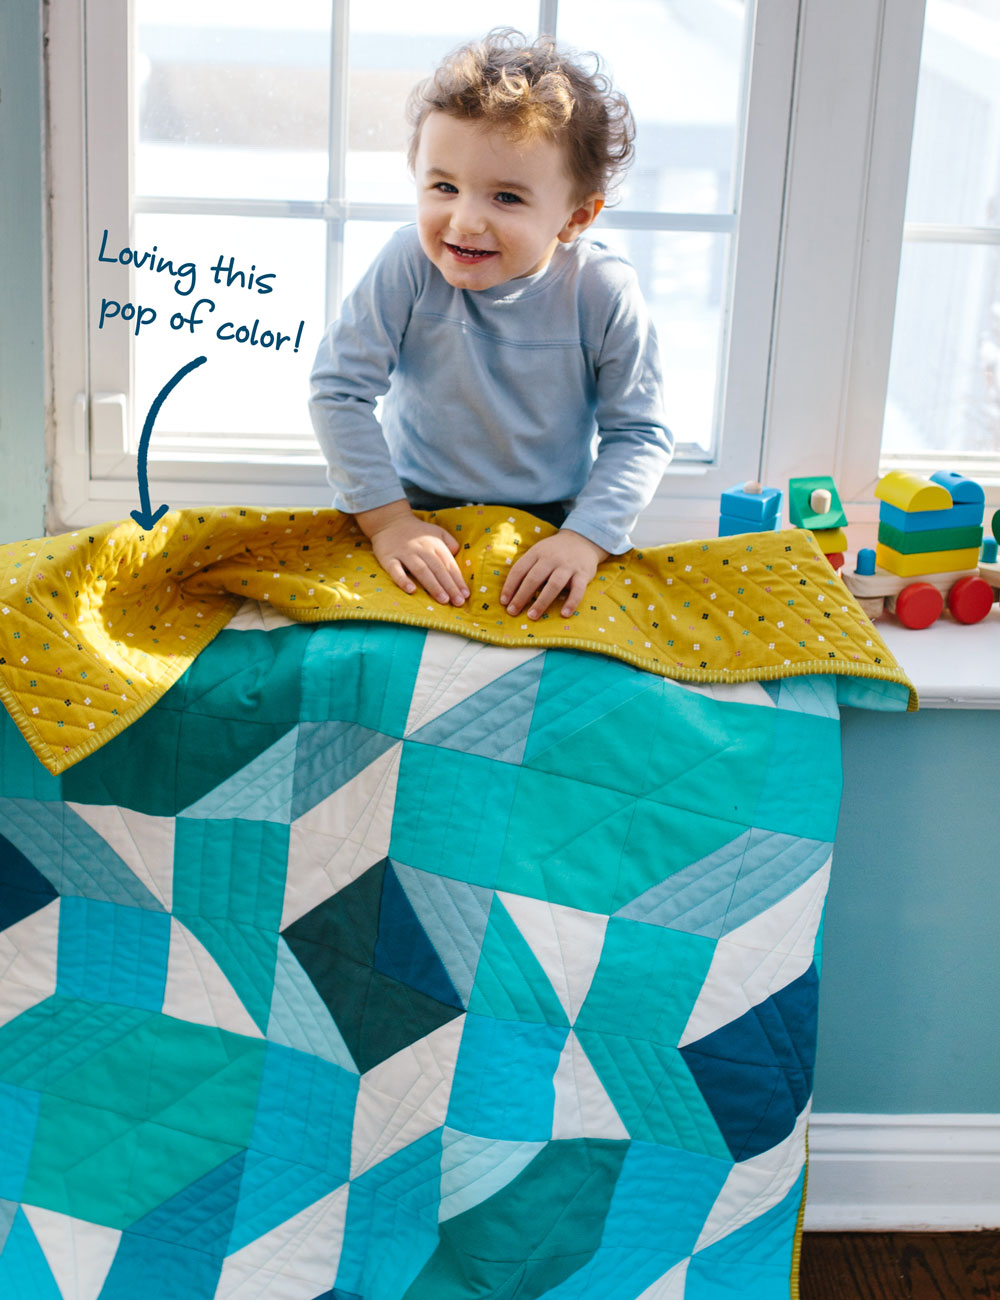 The Rocksteady Modern Quilt Pattern. | Suzy Quilts https://suzyquilts.com/rocksteady-quilt-pattern